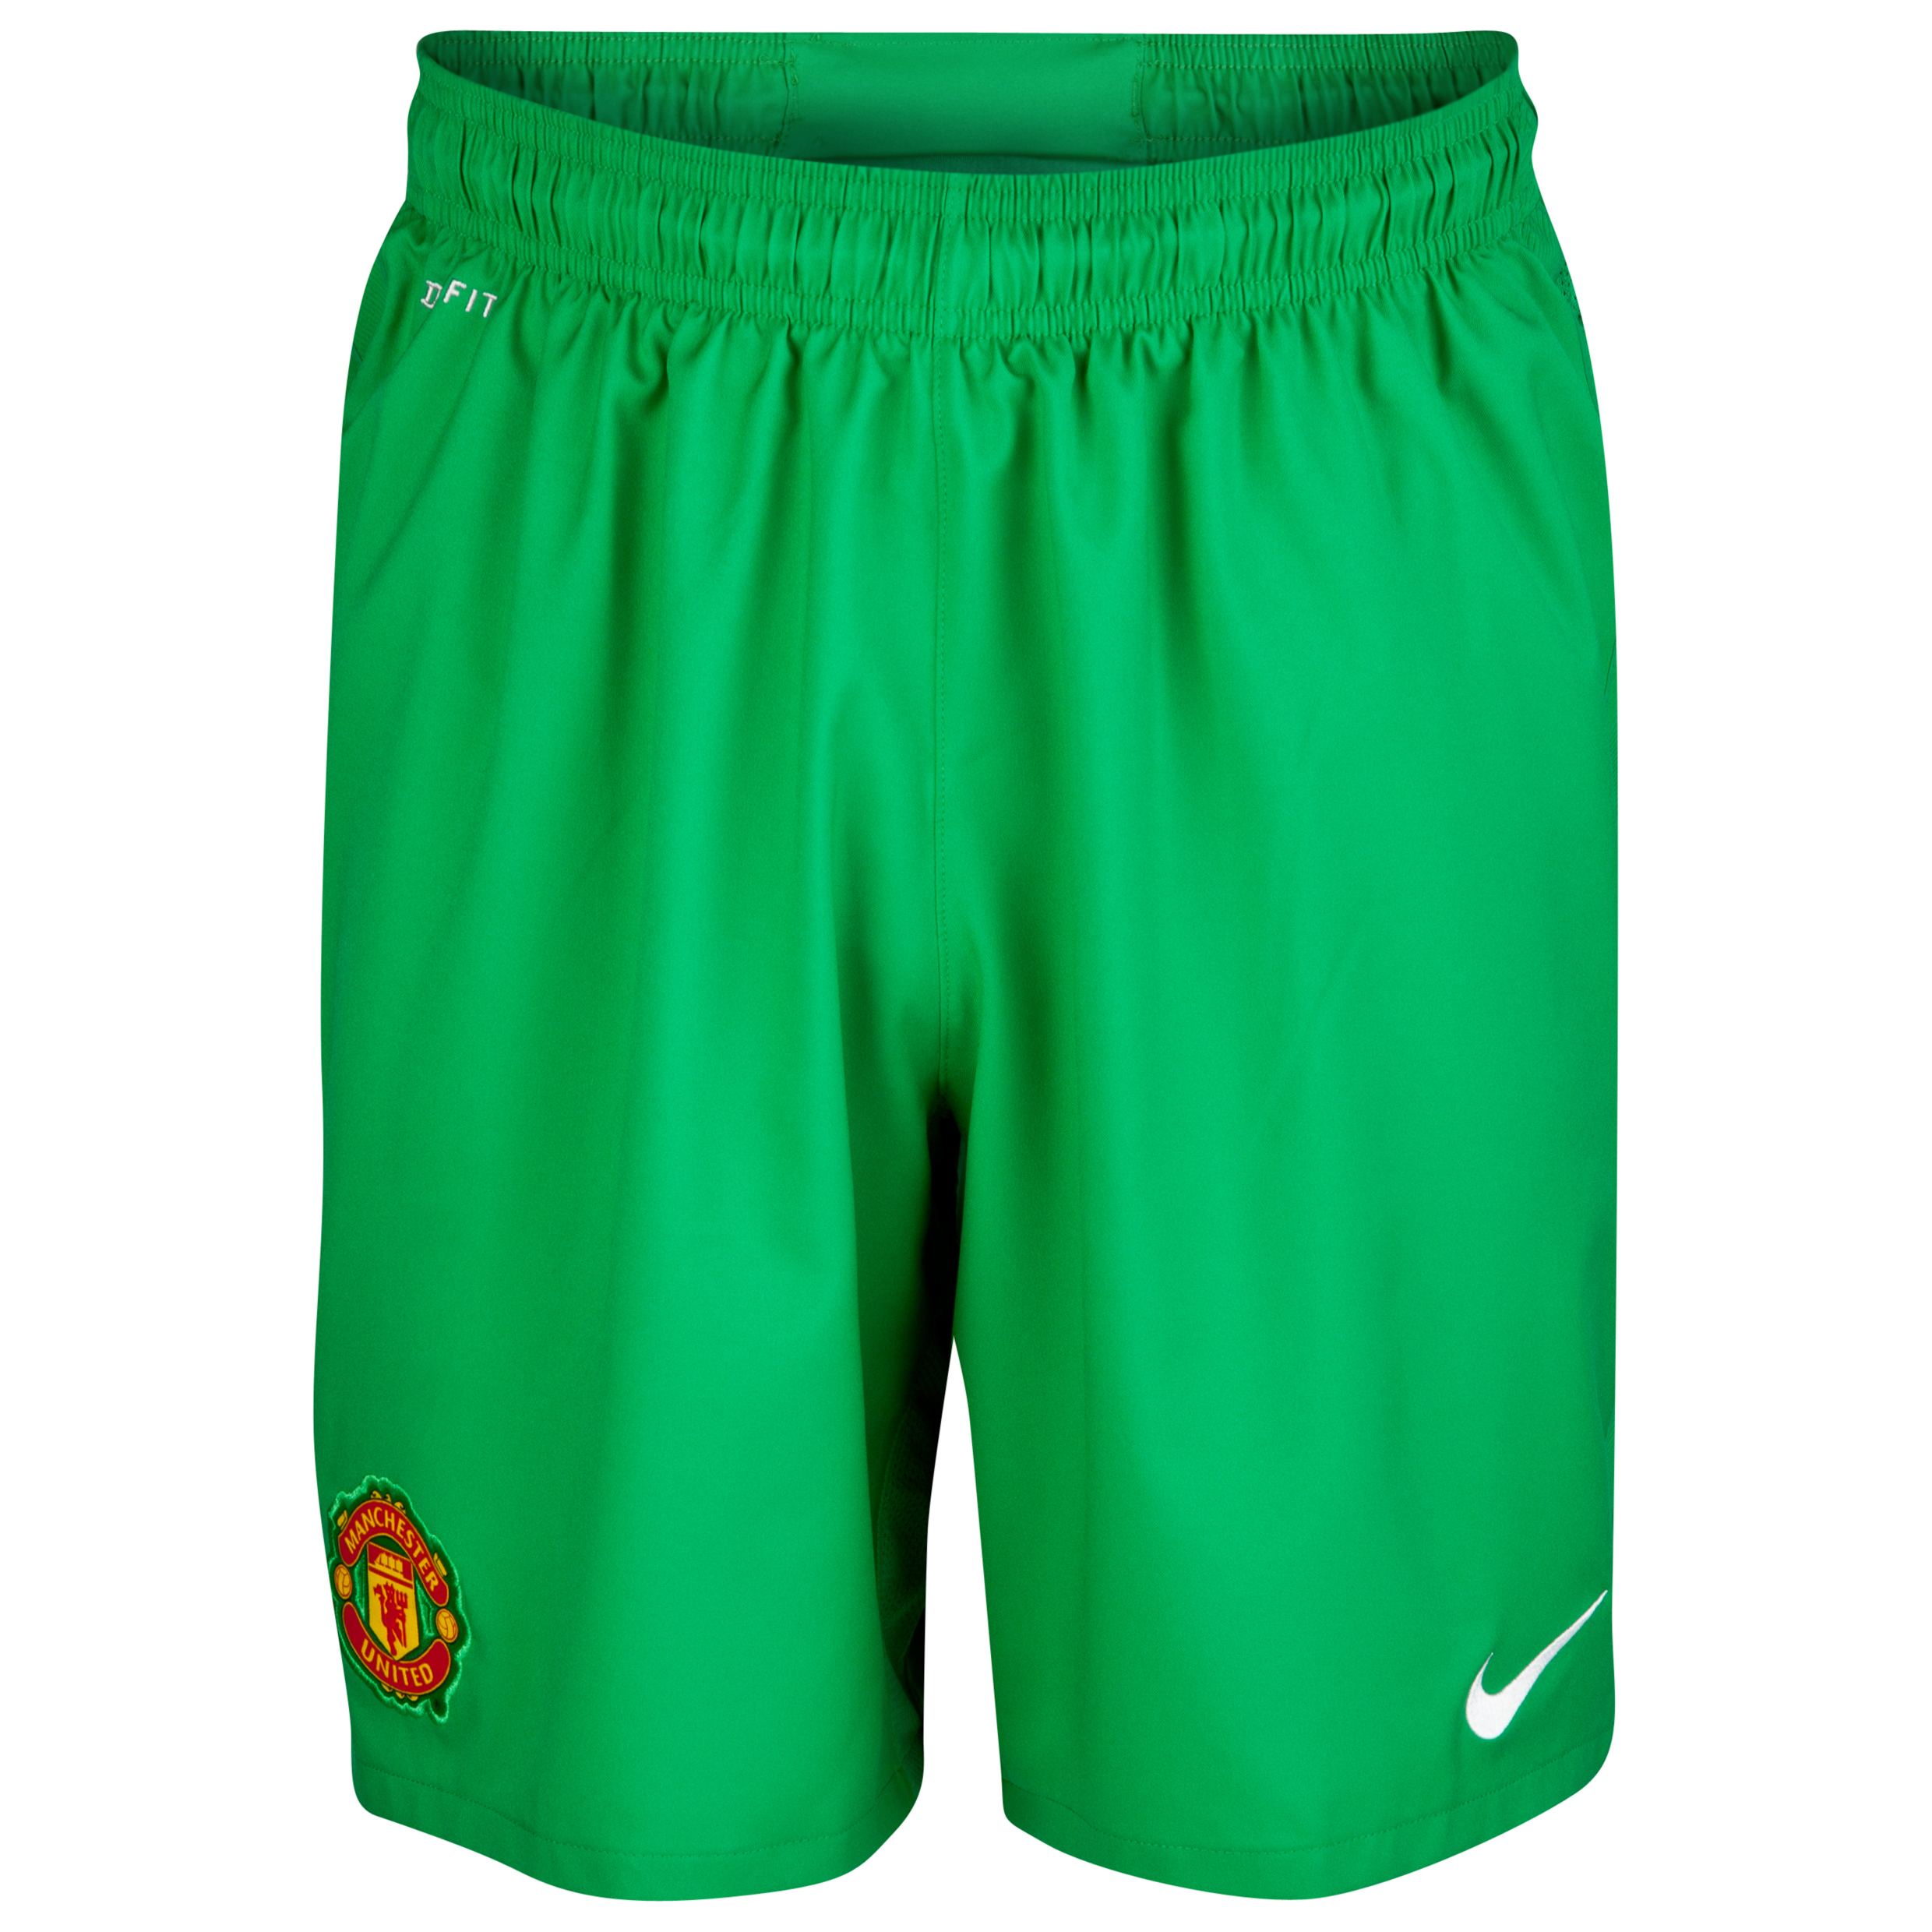 Manchester United Home Goalkeeper Shorts 2012/13 -  Youths